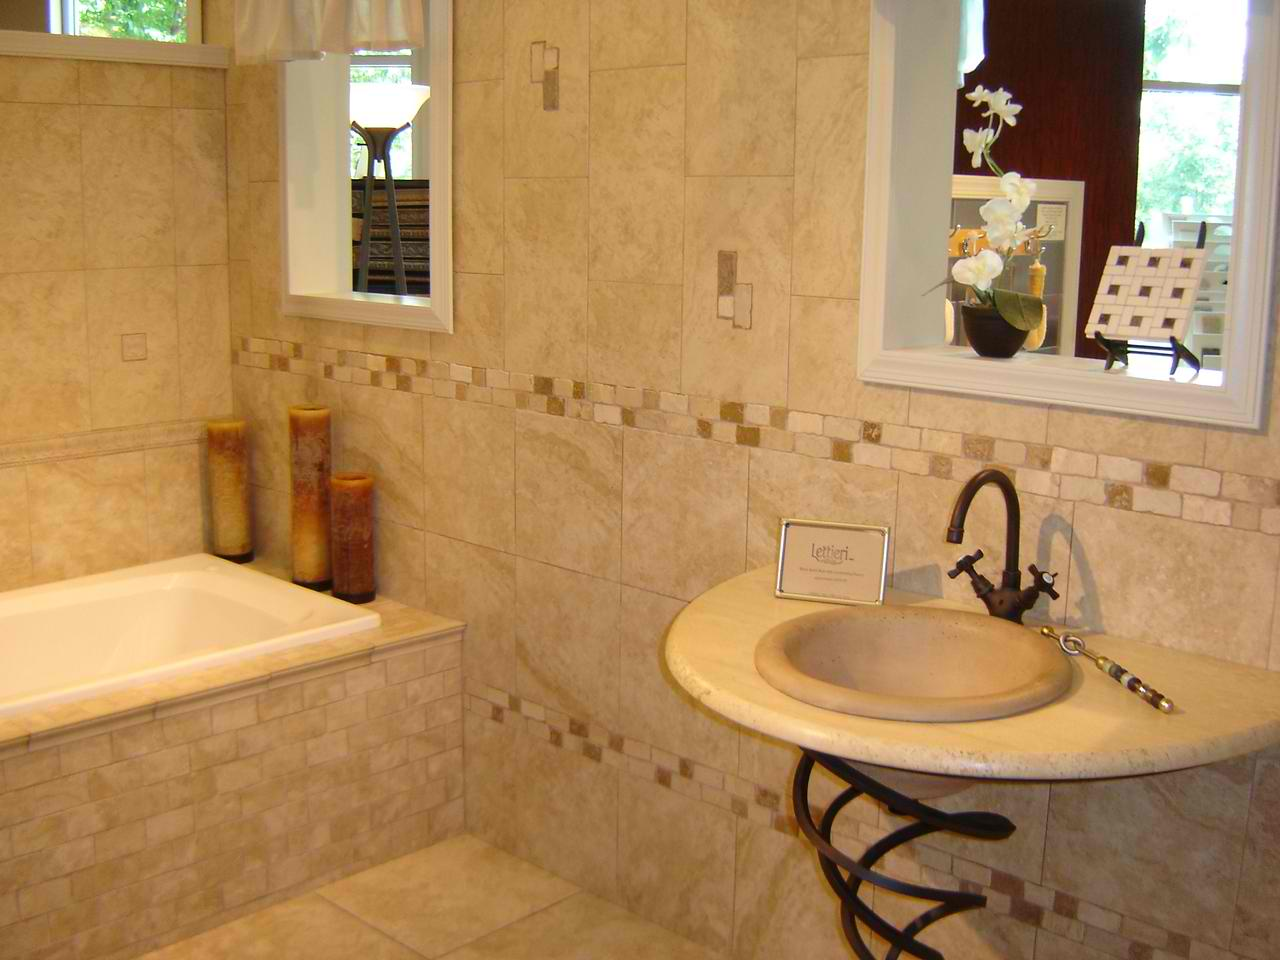 Bathroom Tile Ideas: Bathroom Tile Design